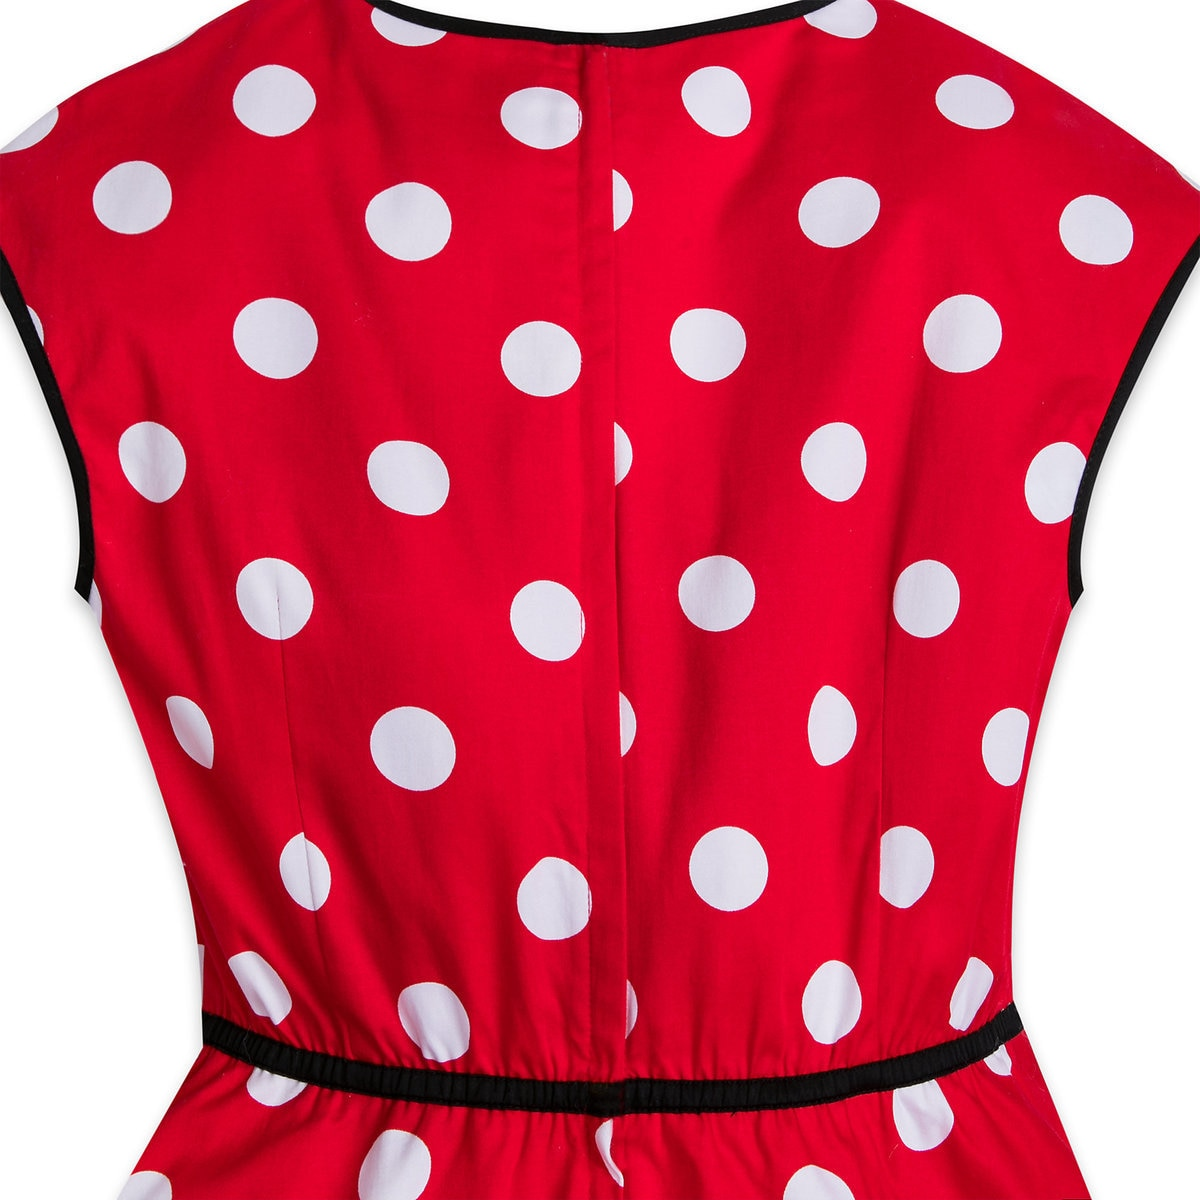 24636b6a9 Product Image of Minnie Mouse Sweetheart Dress for Women # 2